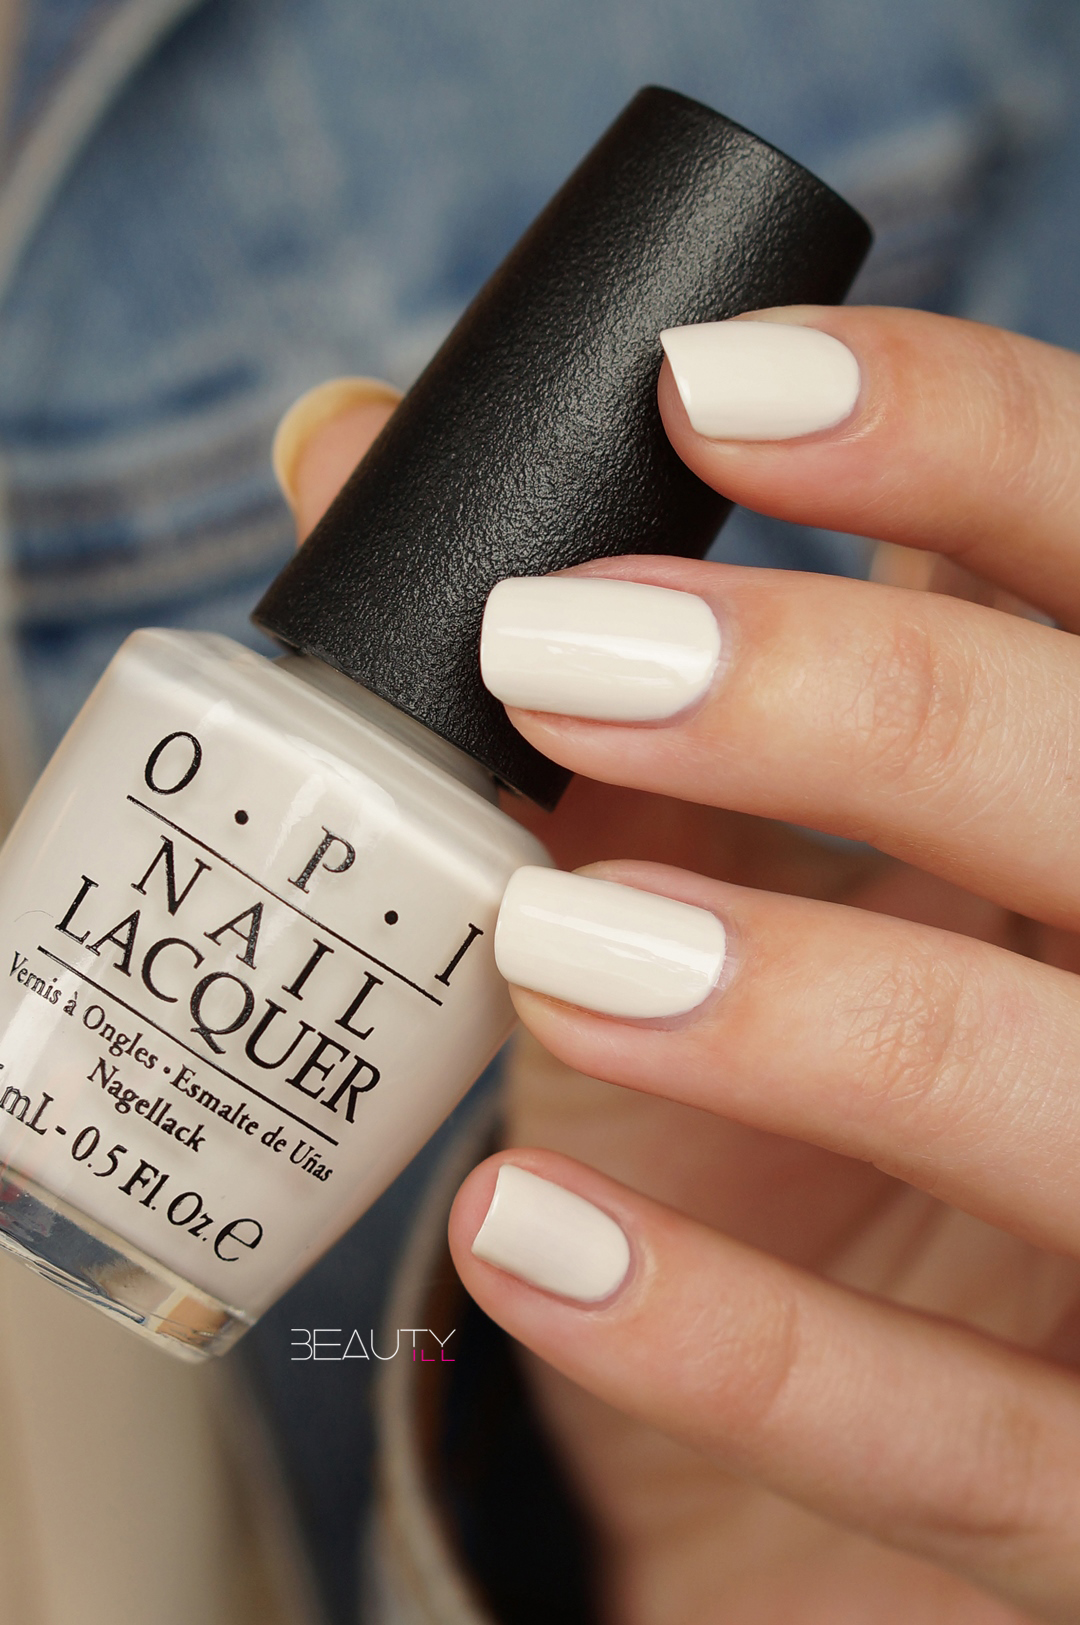 Opi In The Spot Light Pink: OPI Soft Shades Pastels Swatches